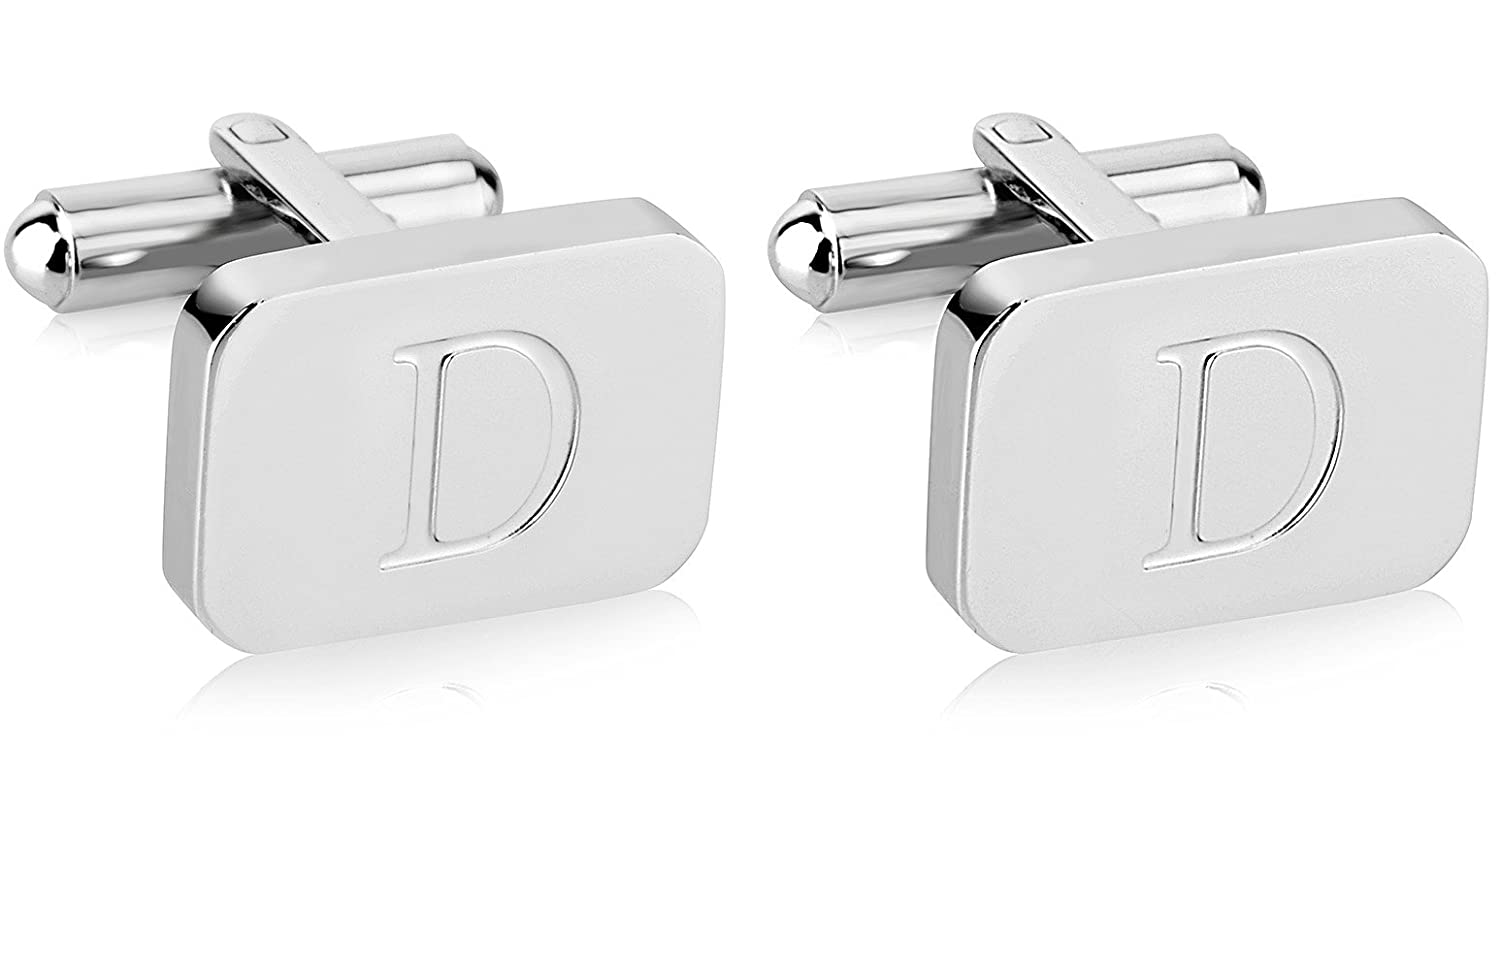 White-Gold Plated Monogram Initial Engraved Stainless Steel Man's Cufflinks With Gift Box -Personalized Alphabet Letter's By Lux & Pair LP0001